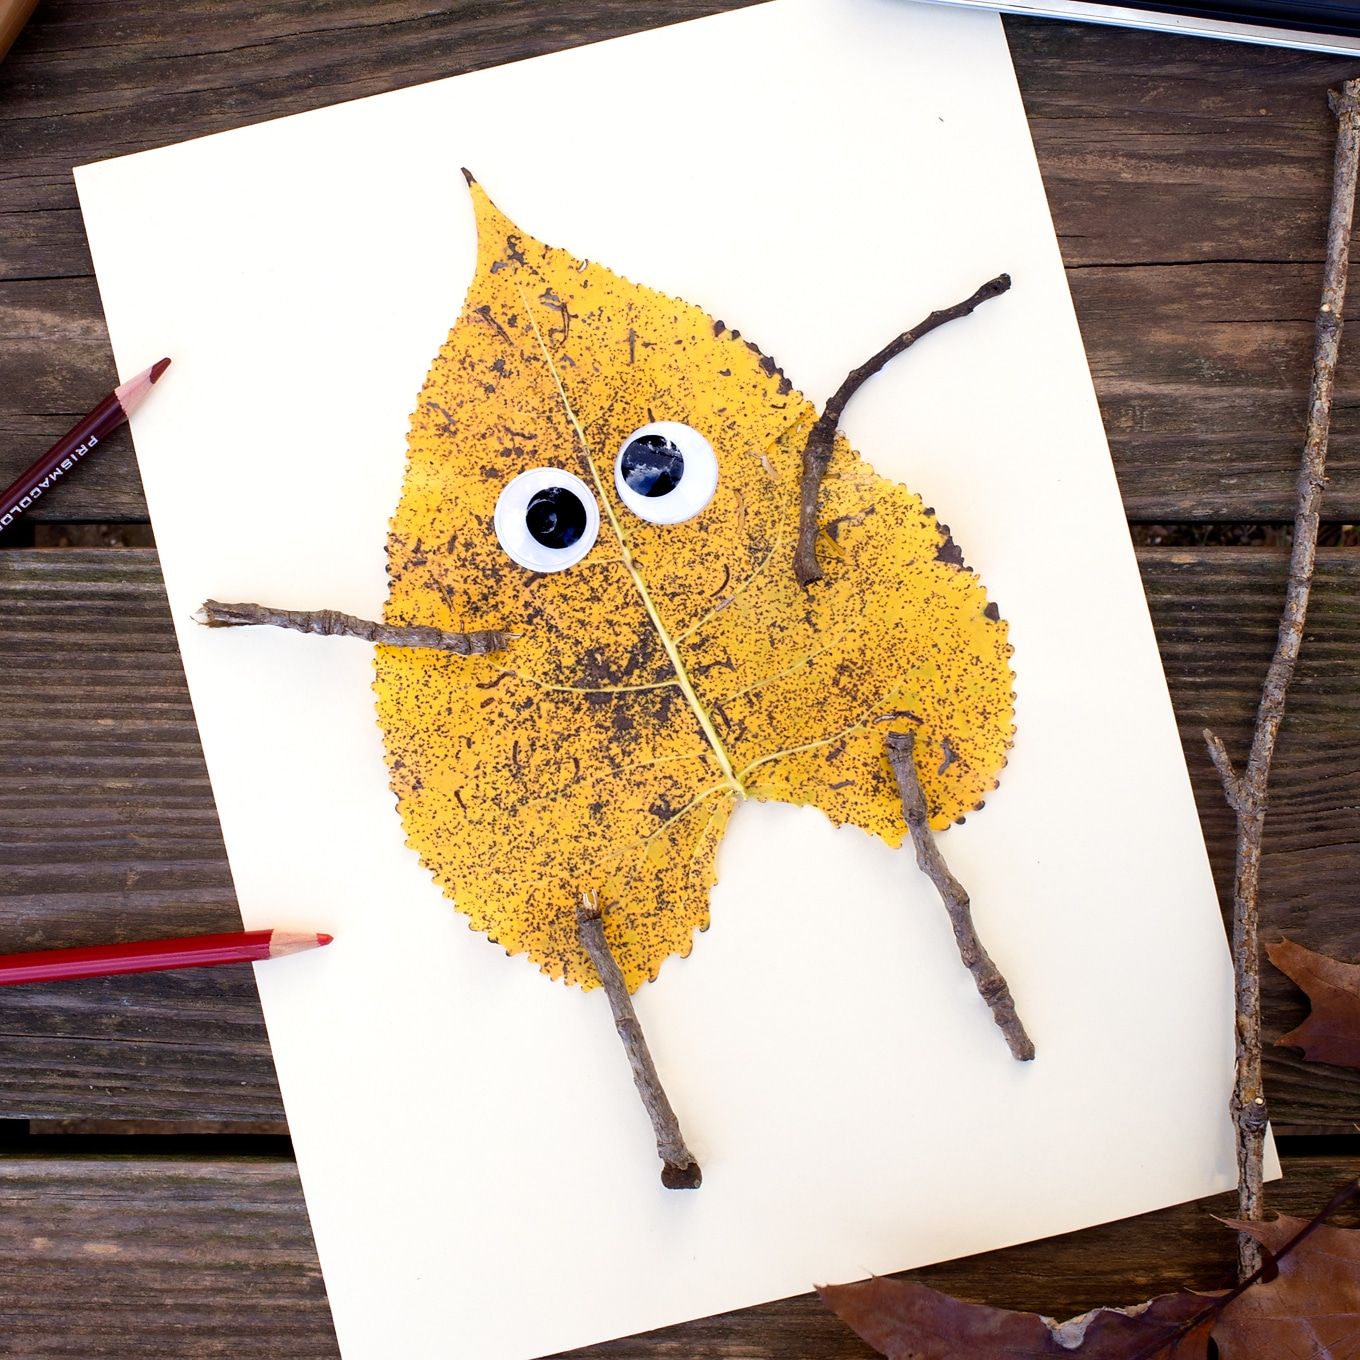 Leaf Art with Wiggly Eyes